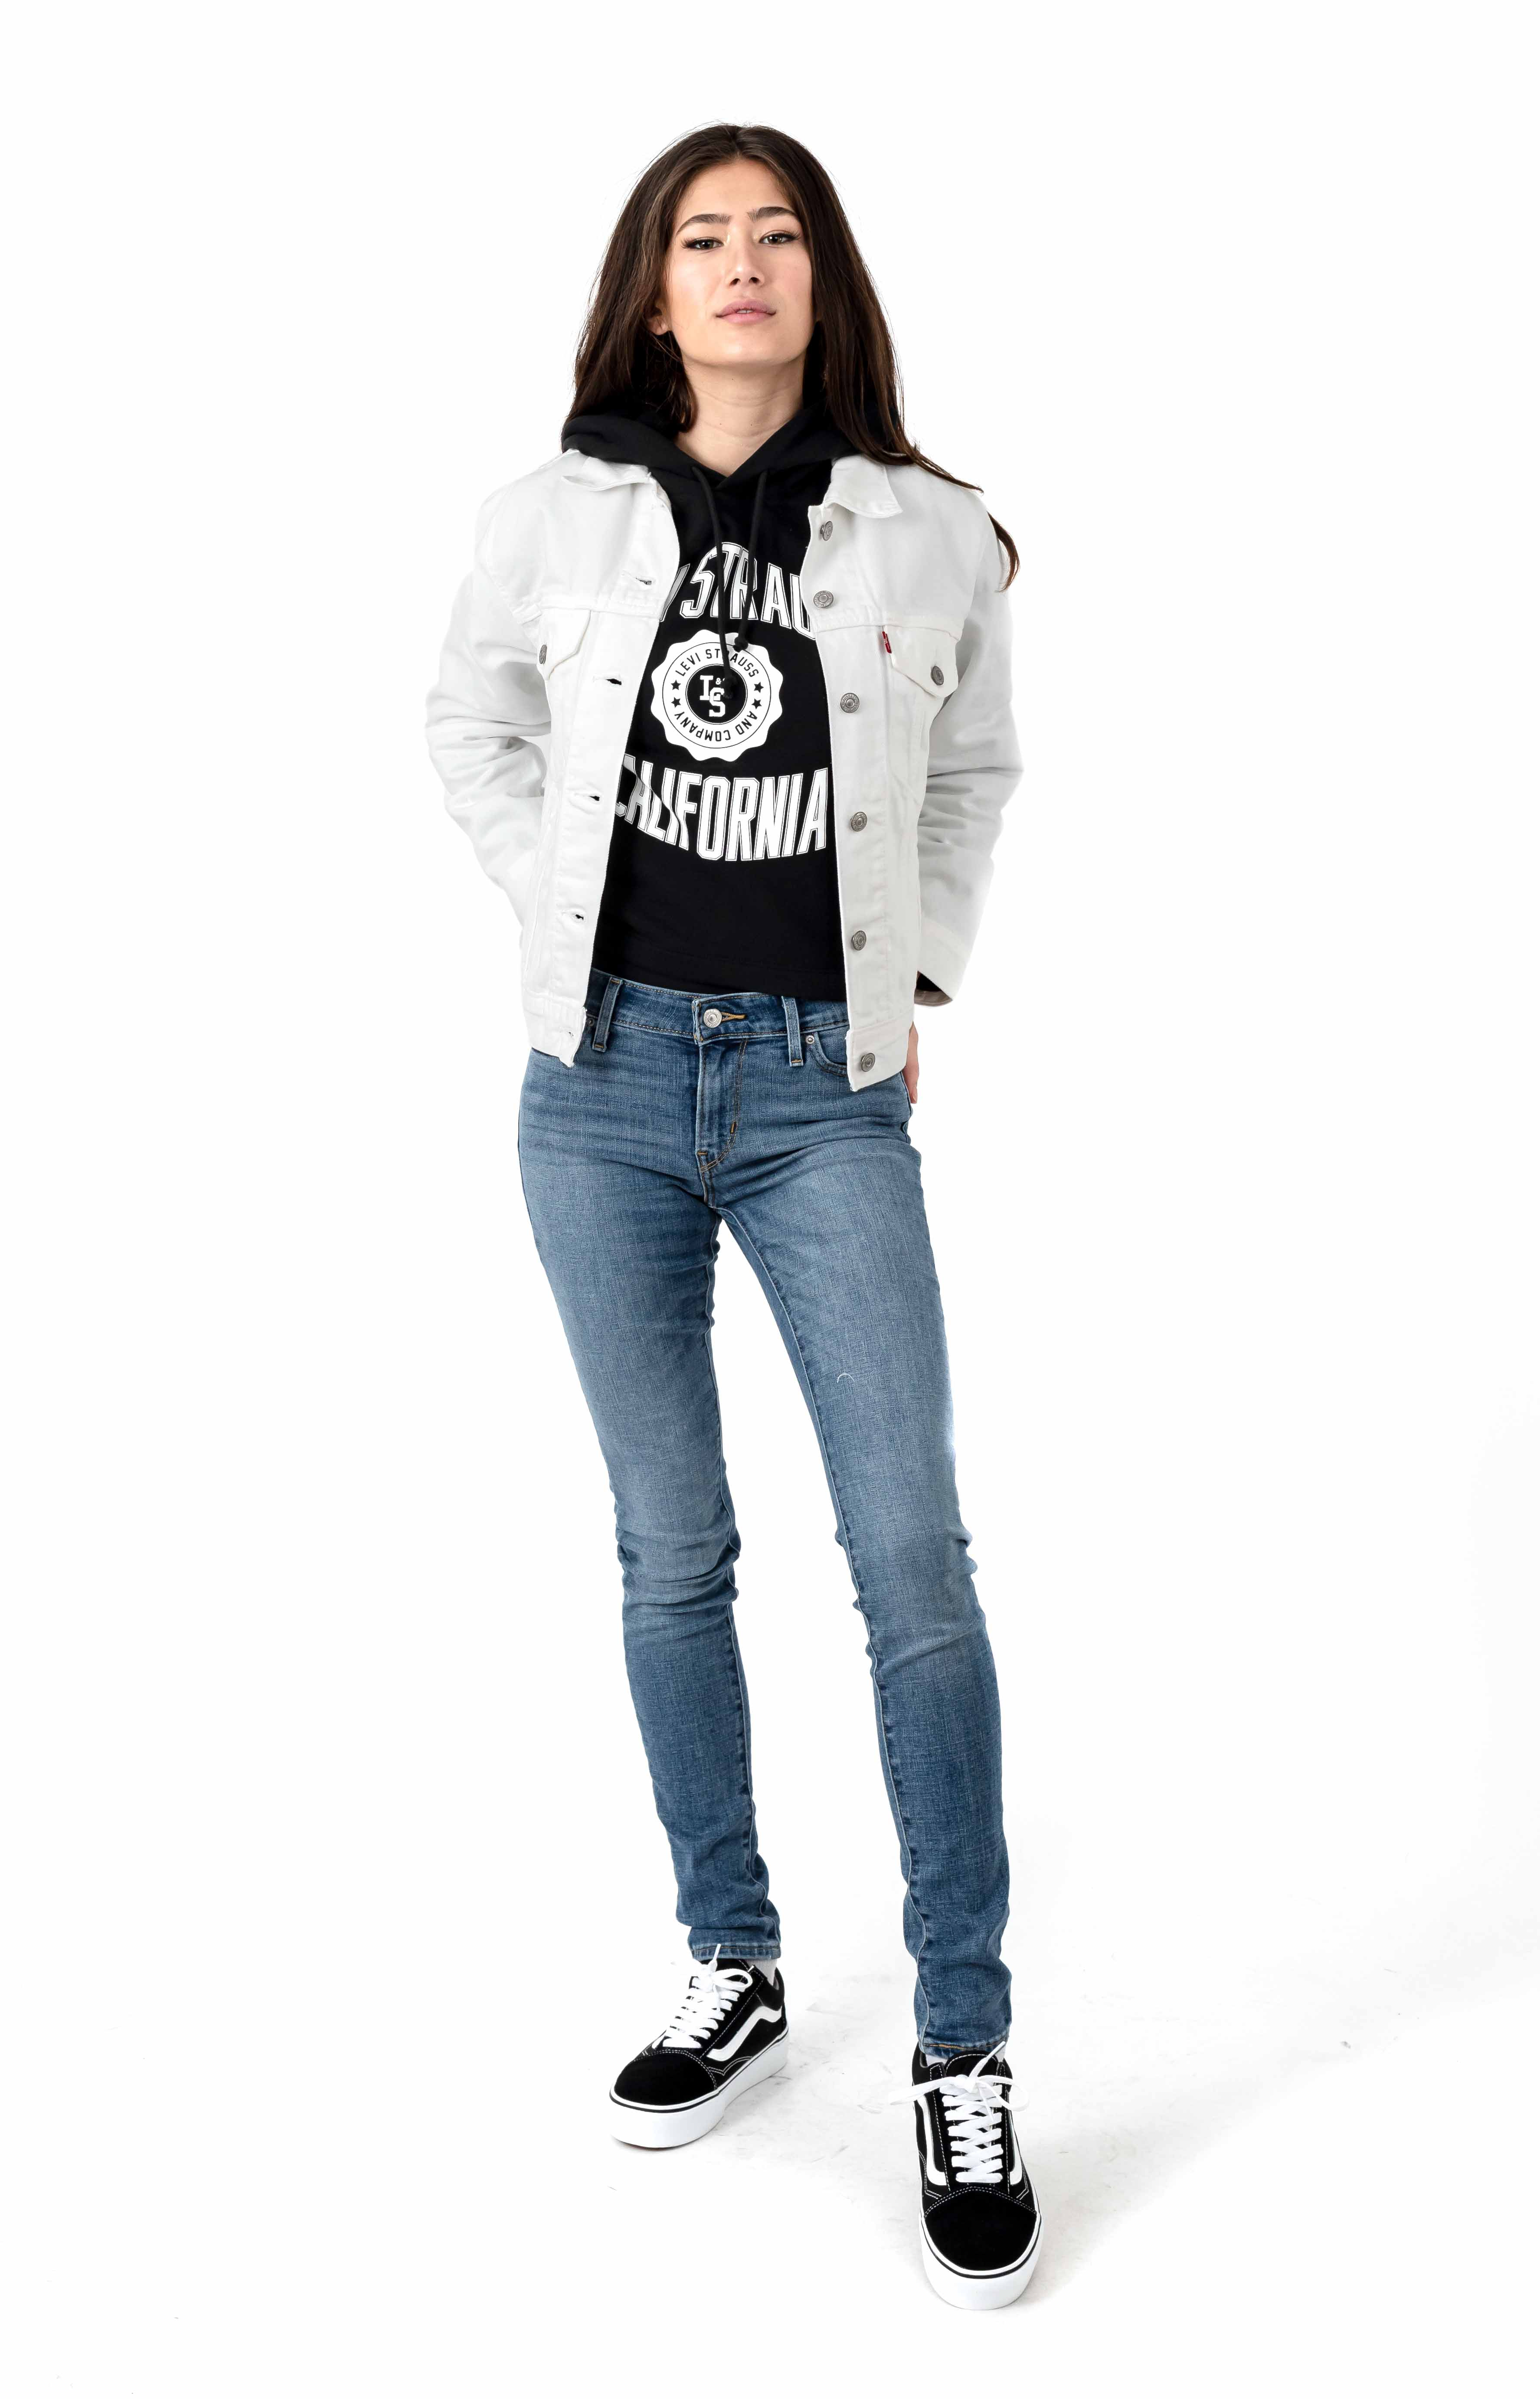 Ex-Boyfriend Trucker Jacket - Frozem Trucker 5